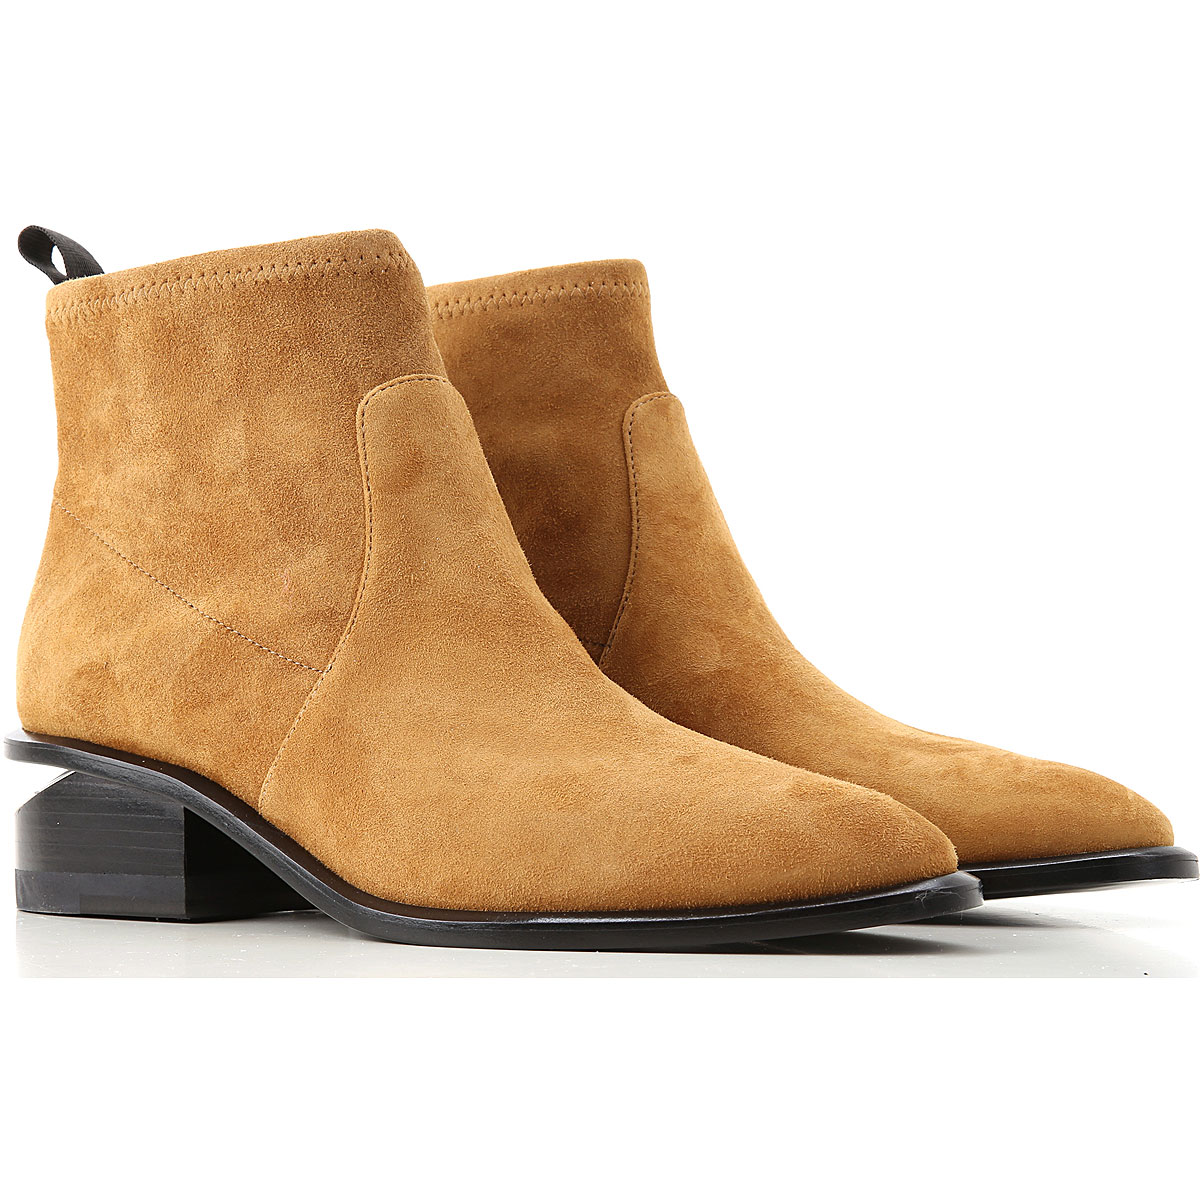 Alexander Wang Boots for Women, Booties On Sale, Camel, Suede leather, 2019, 10 8 8.5 9